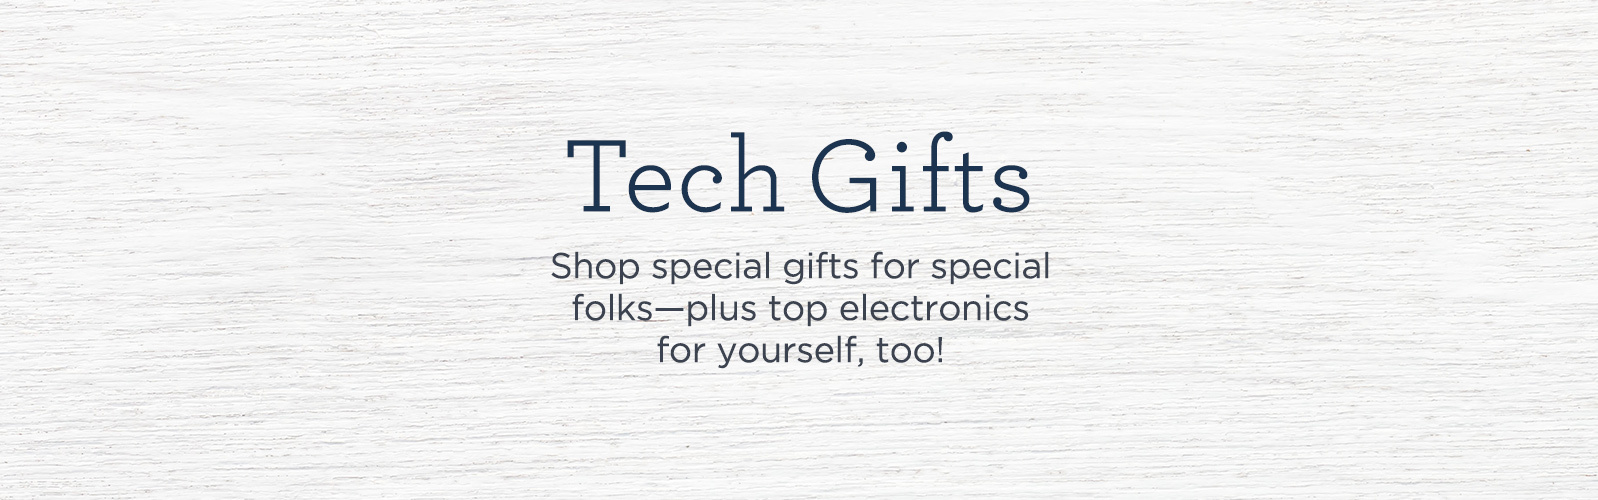 Tech Gifts - Shop special gifts for special folks—plus top electronics for yourself, too!